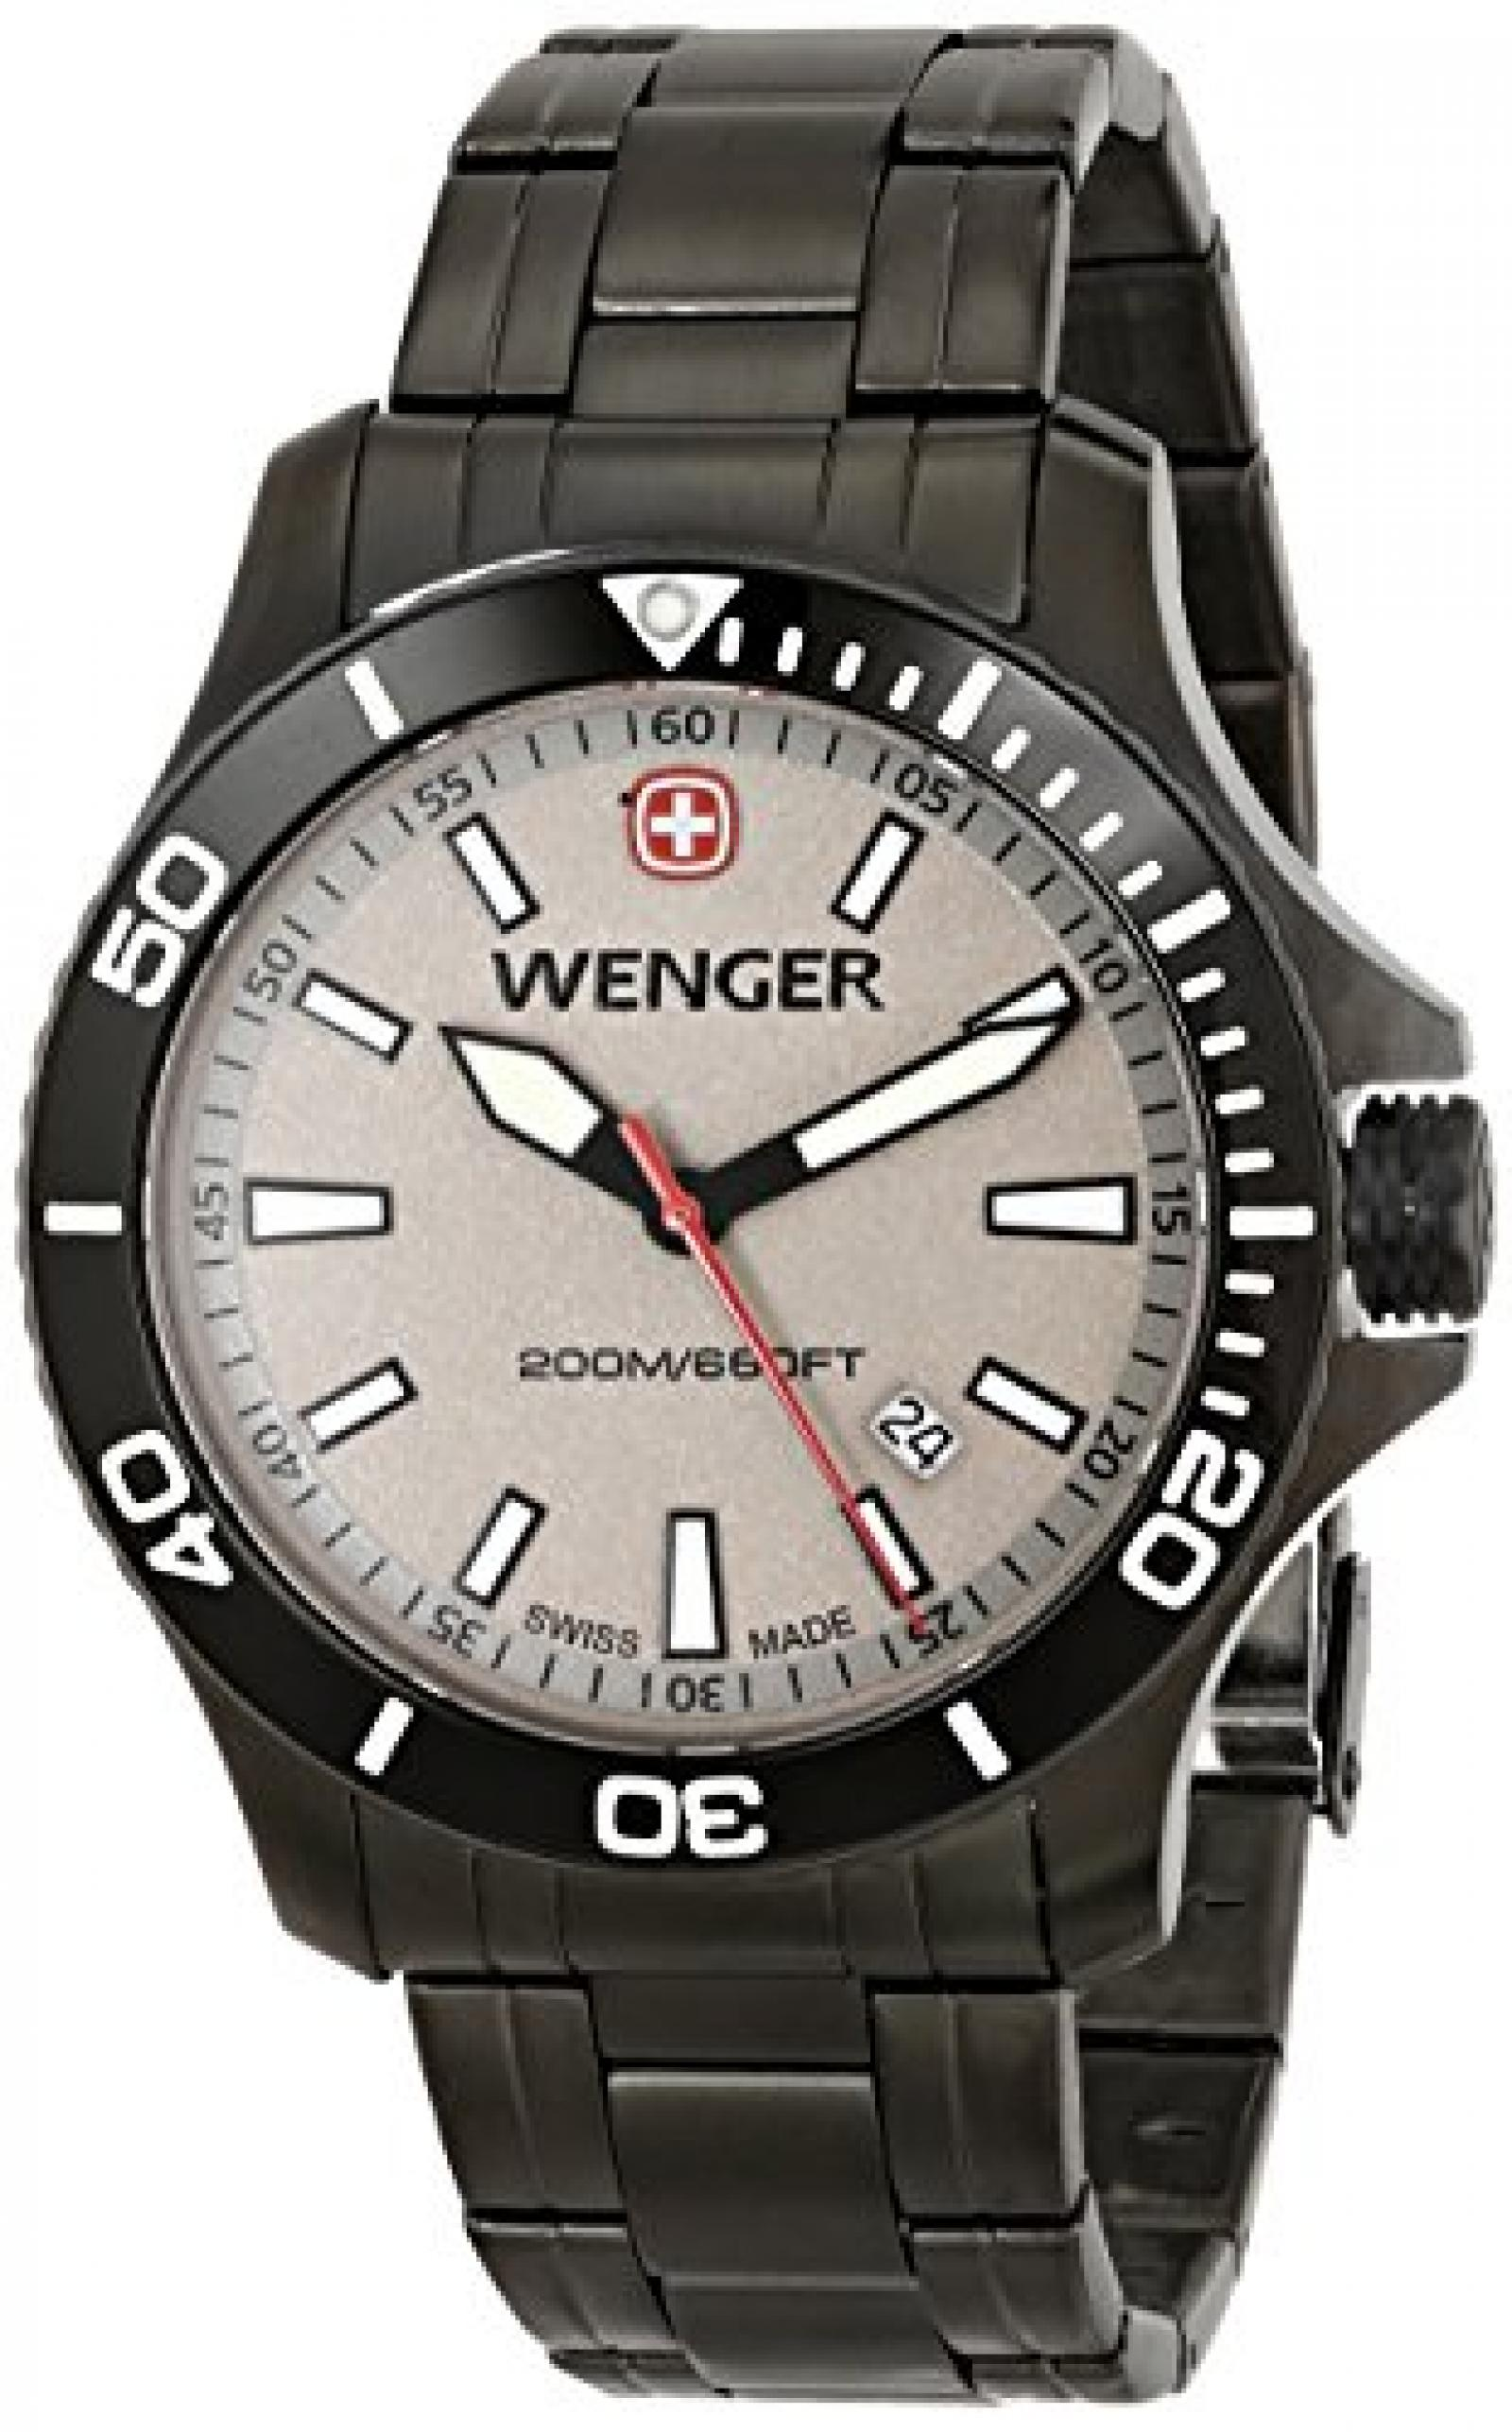 Wenger Herren 0641.107 Sea Force 3H Analog Display Swiss Quartz Grey Armbanduhr